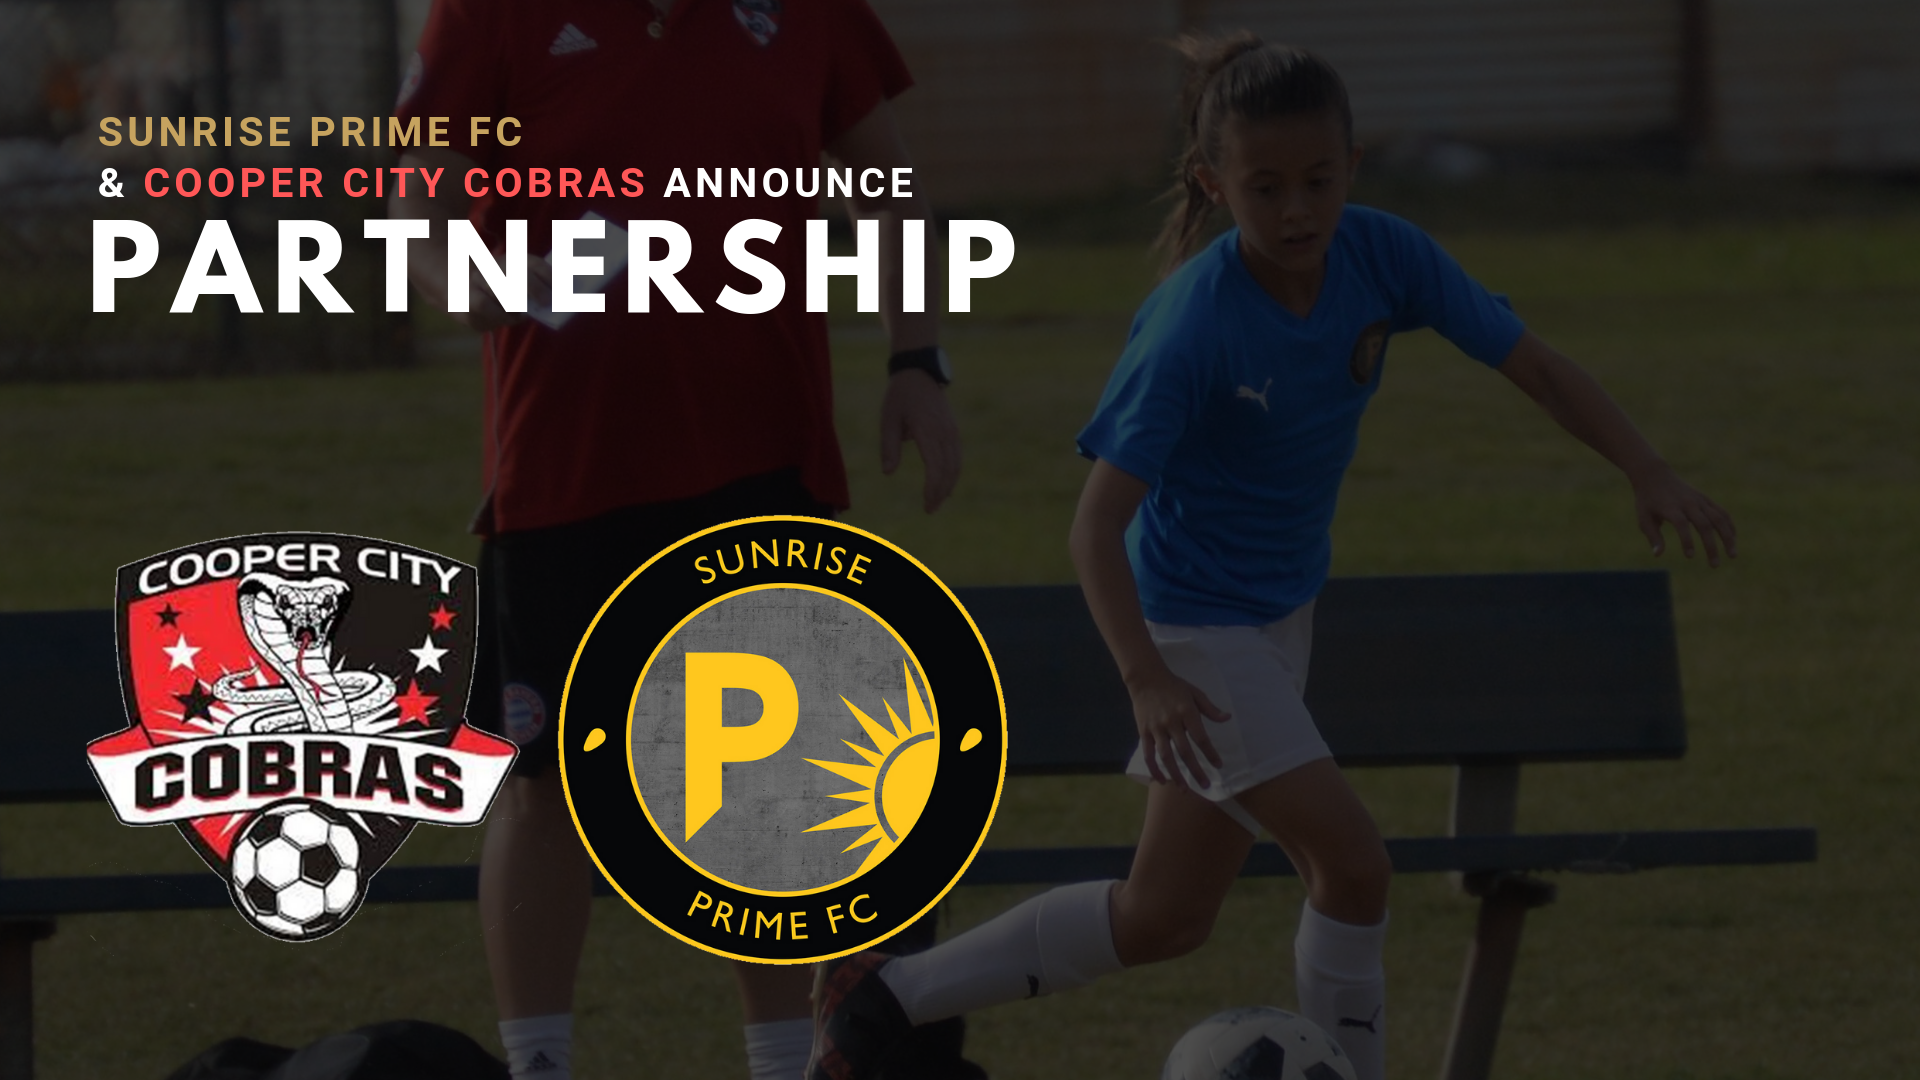 Cooper City Cobras & Sunrise Prime FC Announce Partnership